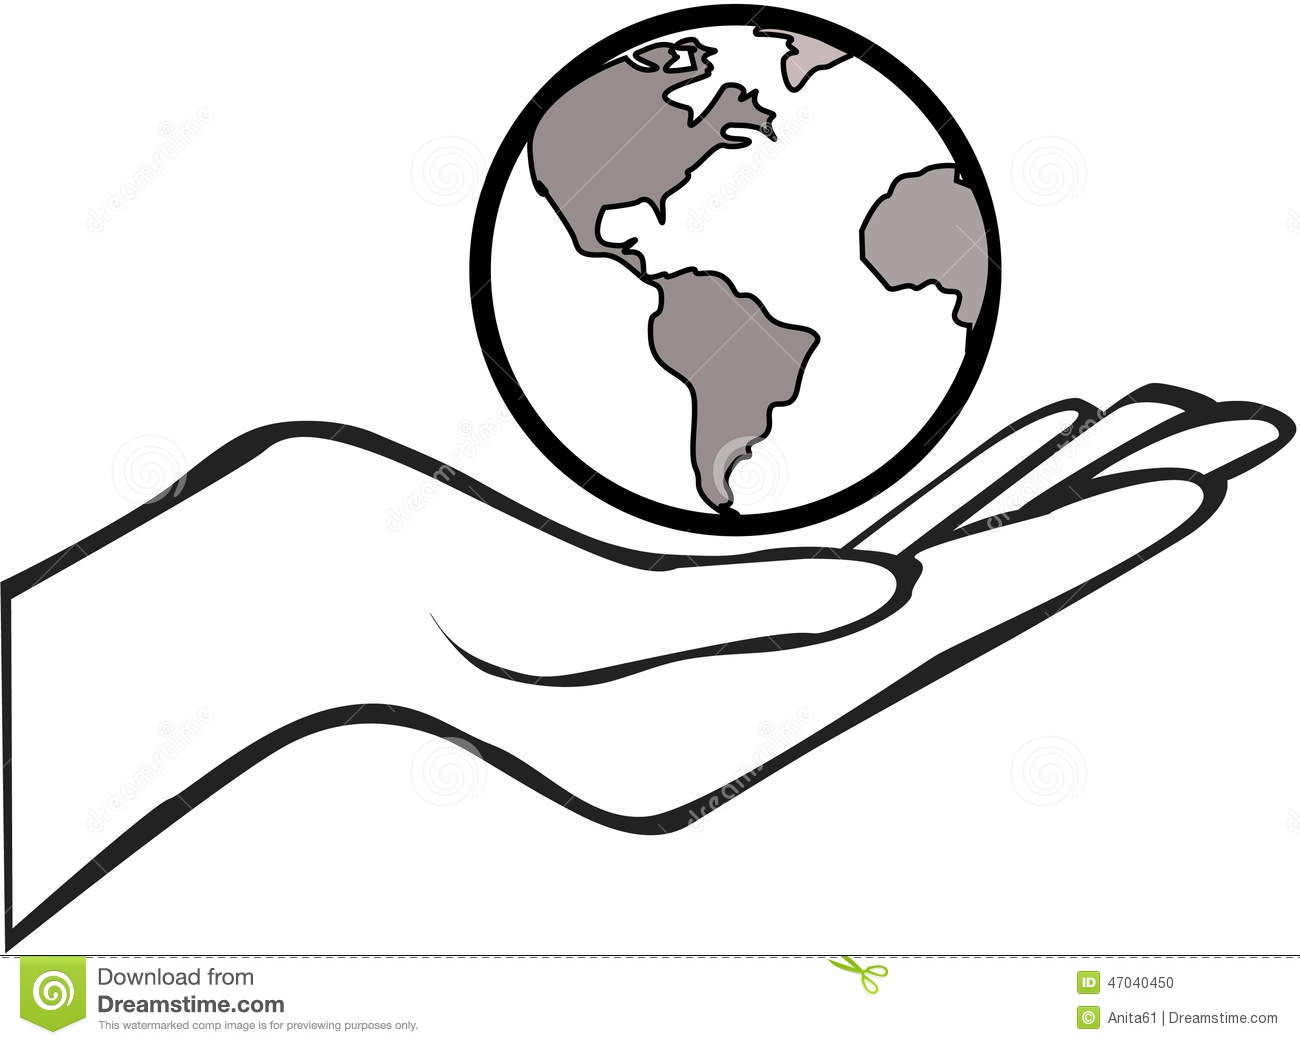 planet earth clipart black and white - photo #24